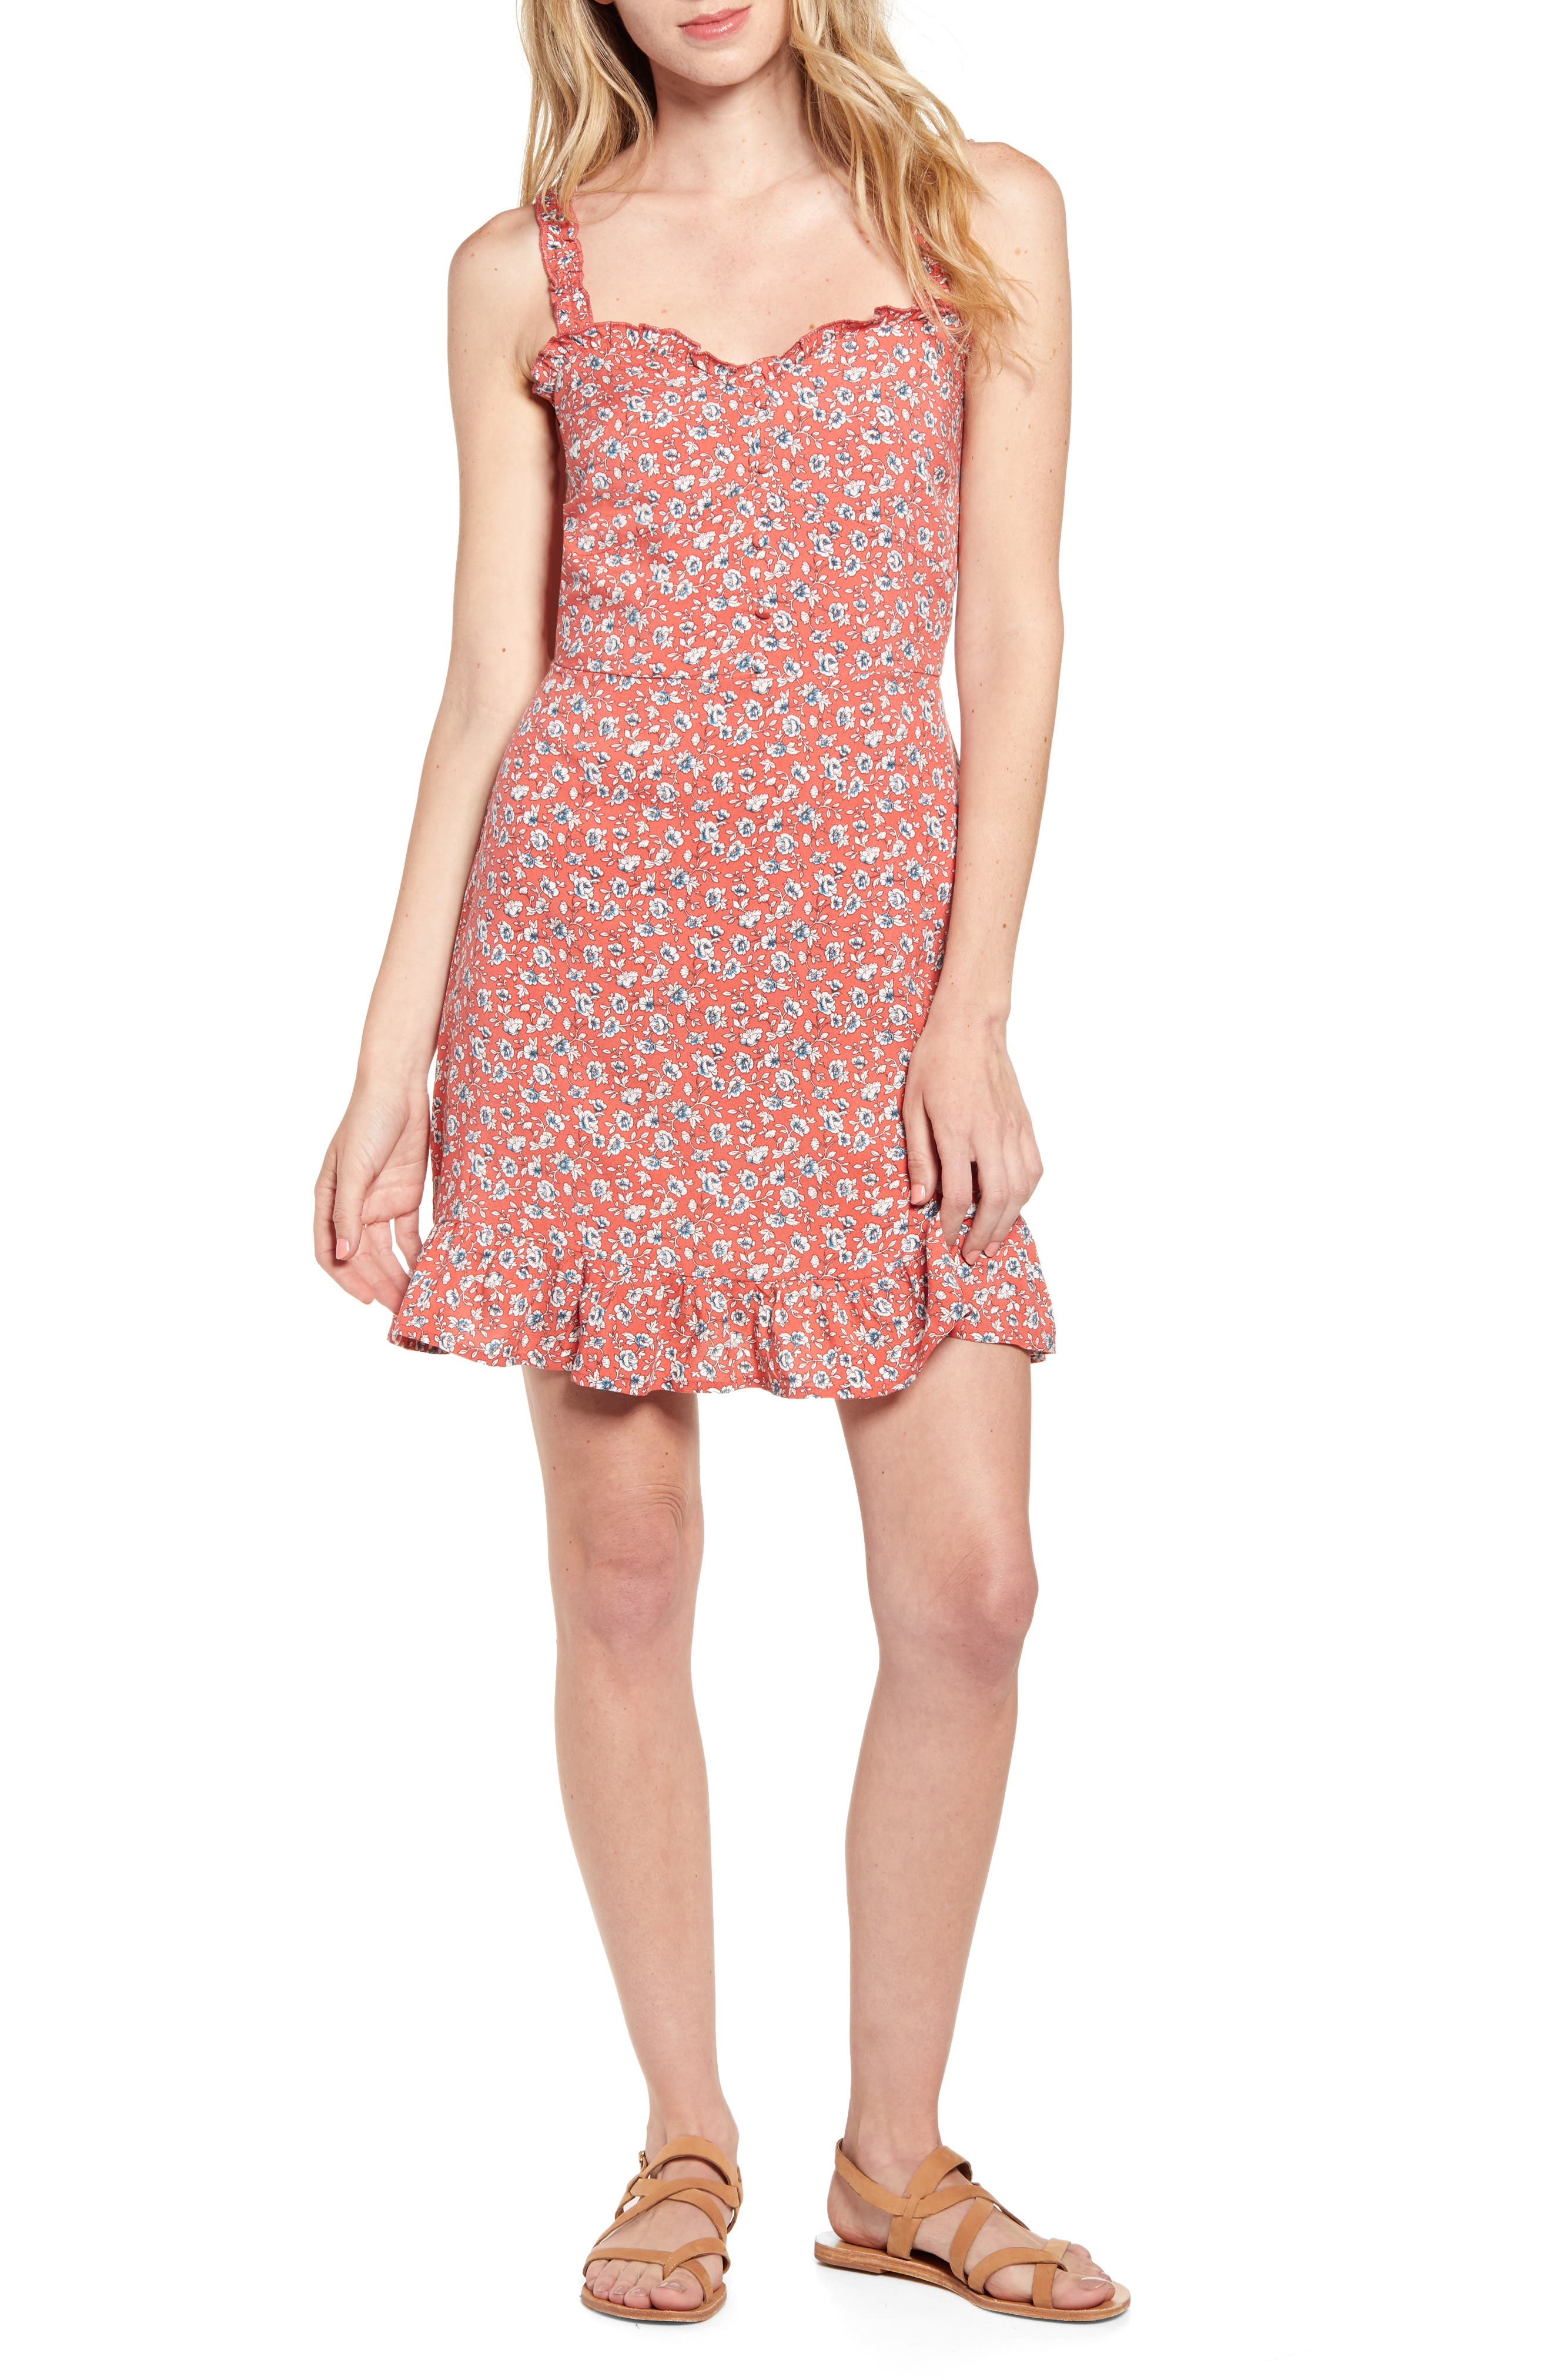 Band Of Gypsies Daisy Floral Print Sundress, Coral